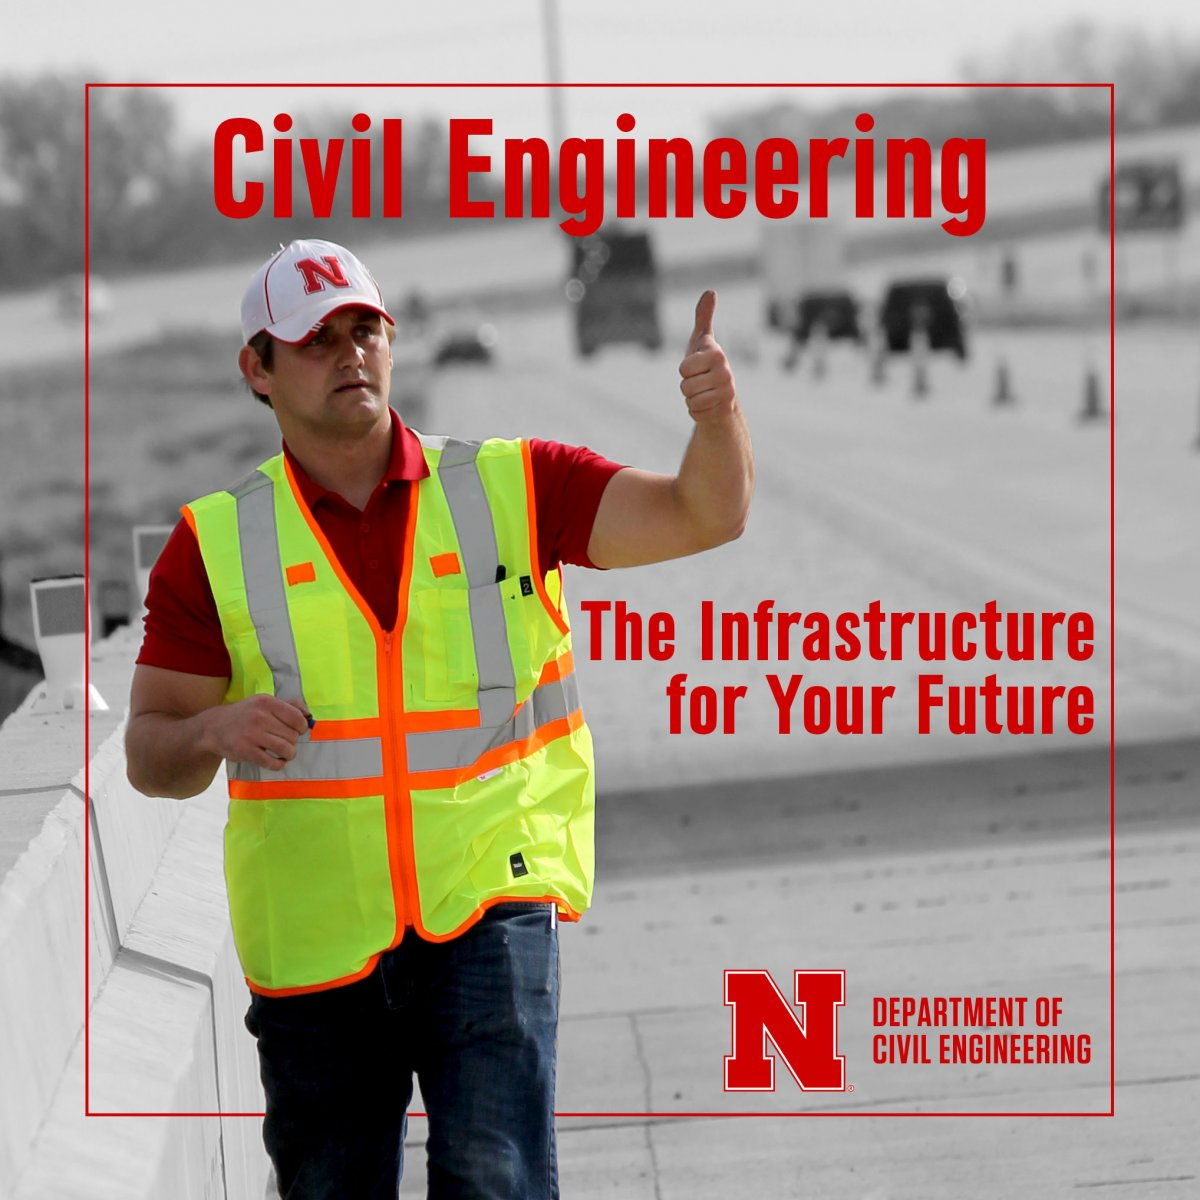 Nebraska Student gives thumbs up during I-80 bridge inspection.